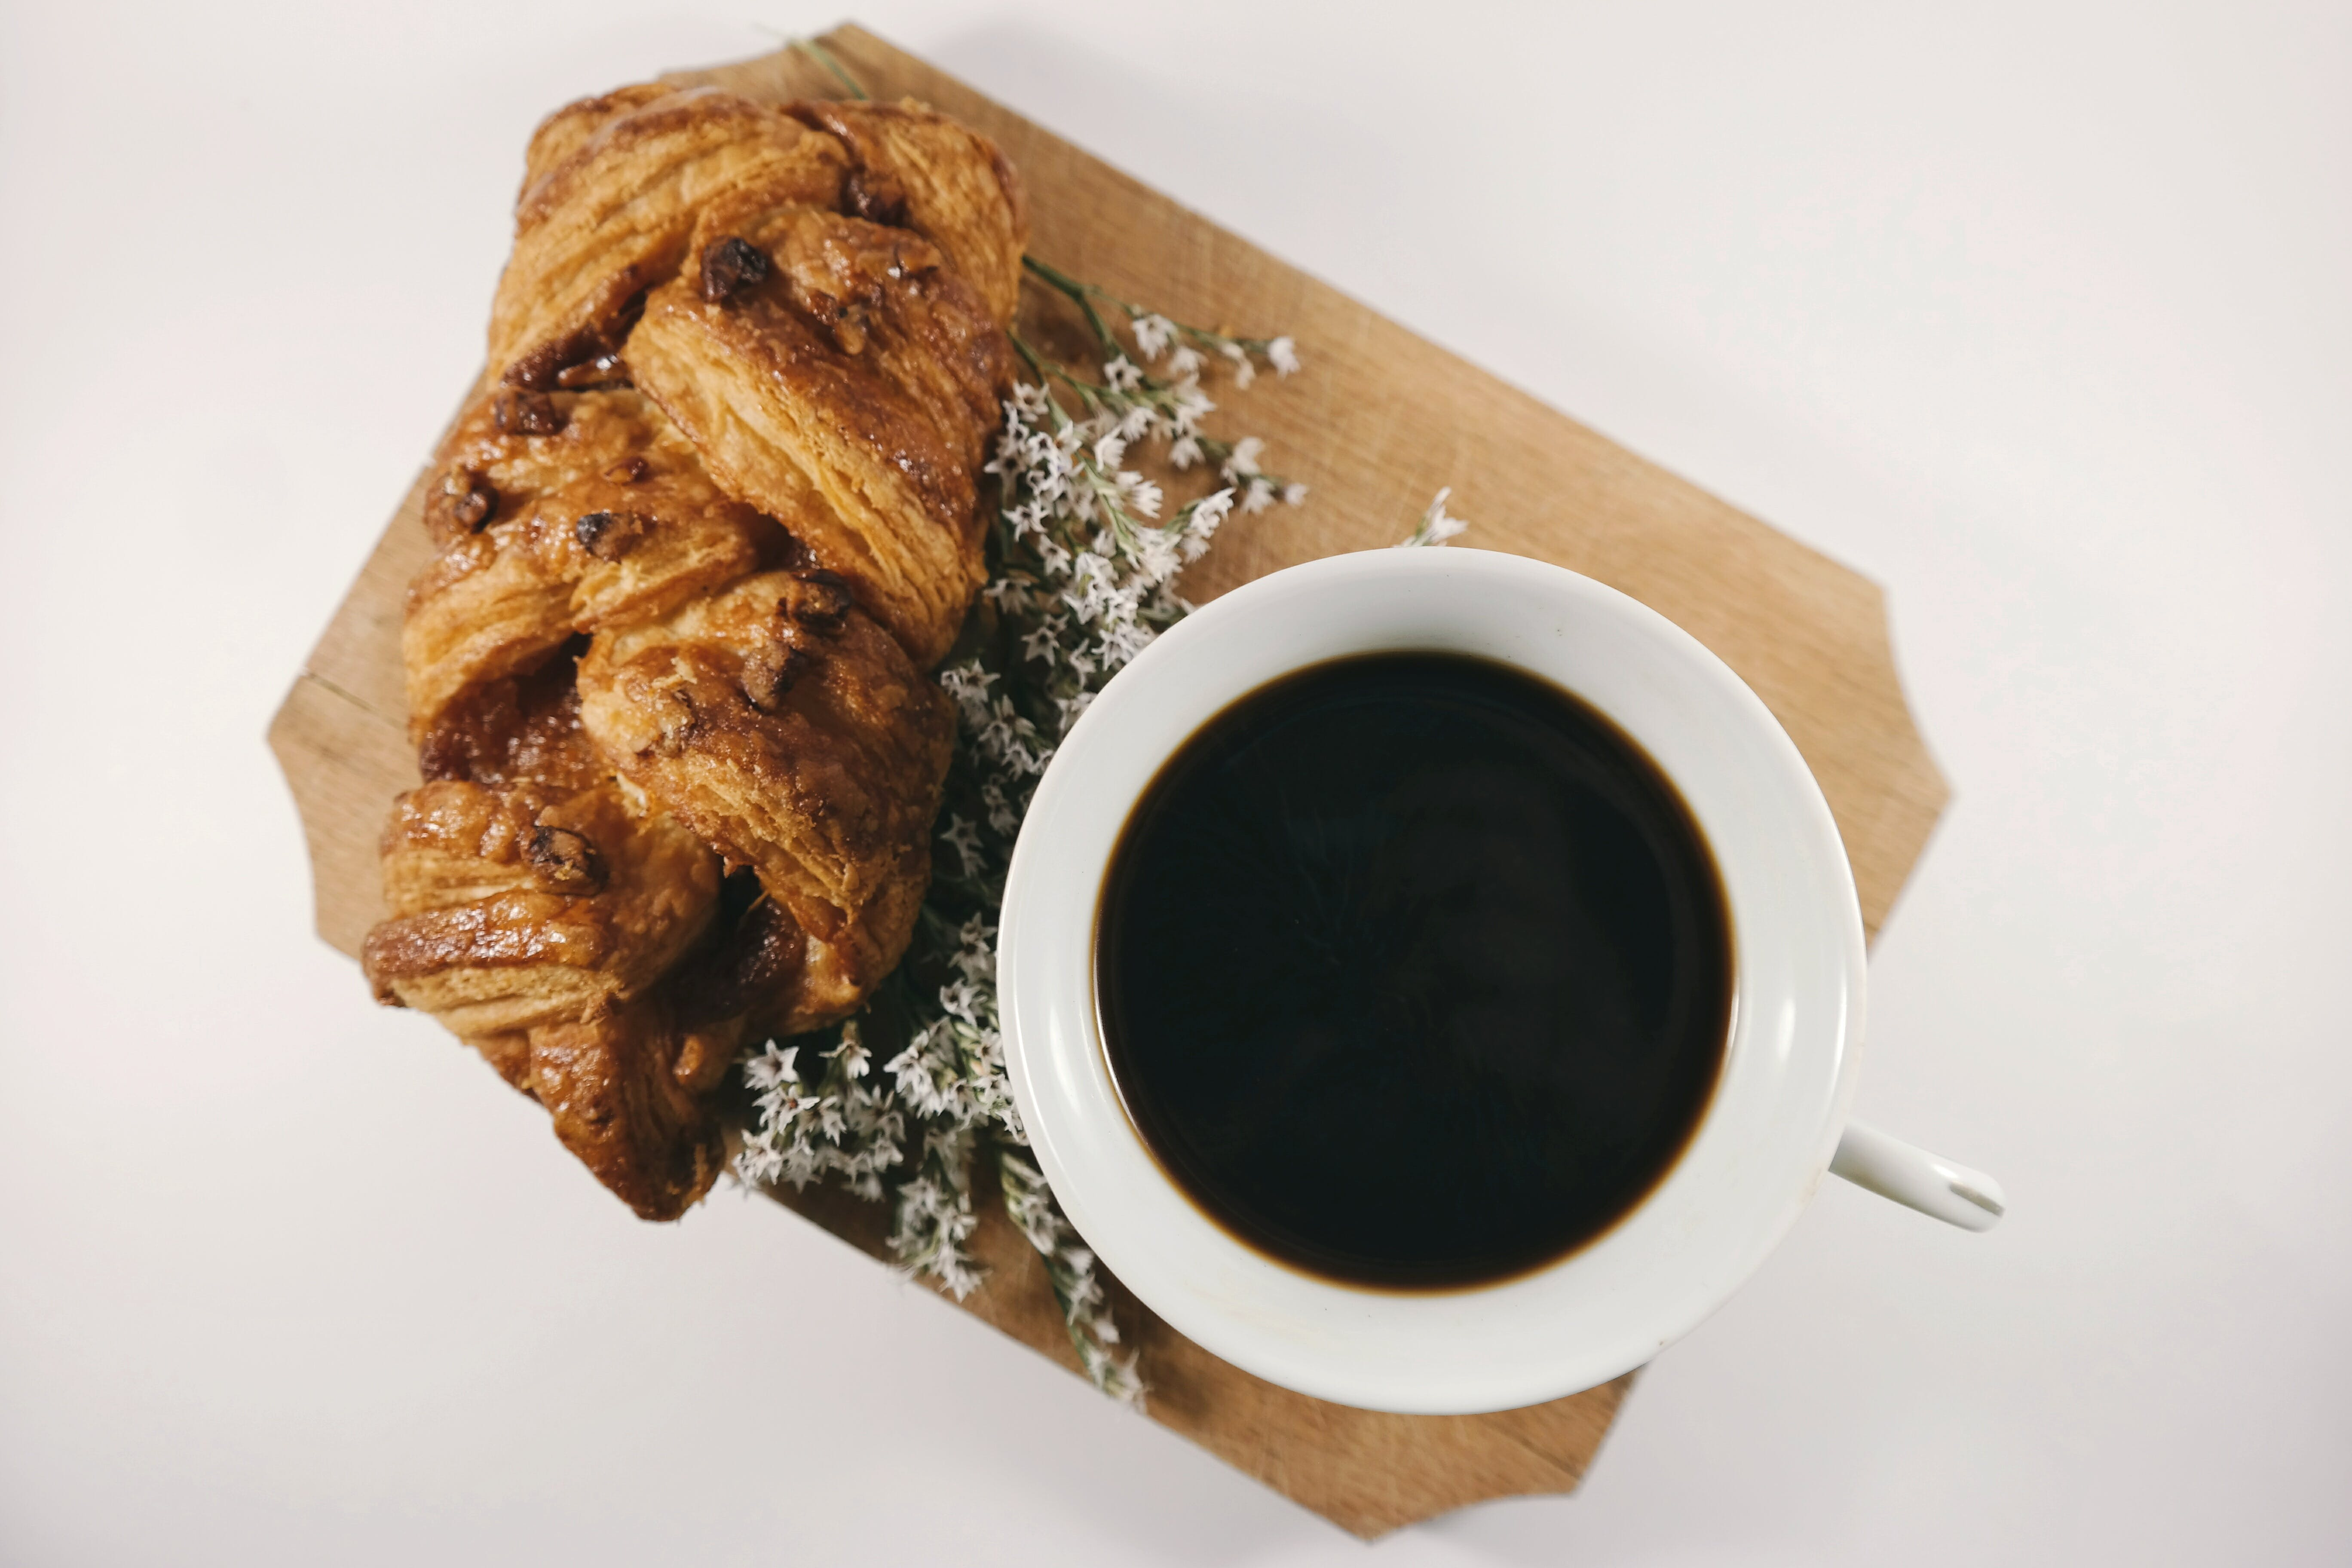 White Ceramic Teacup Filled With Coffee Near Baked Bread